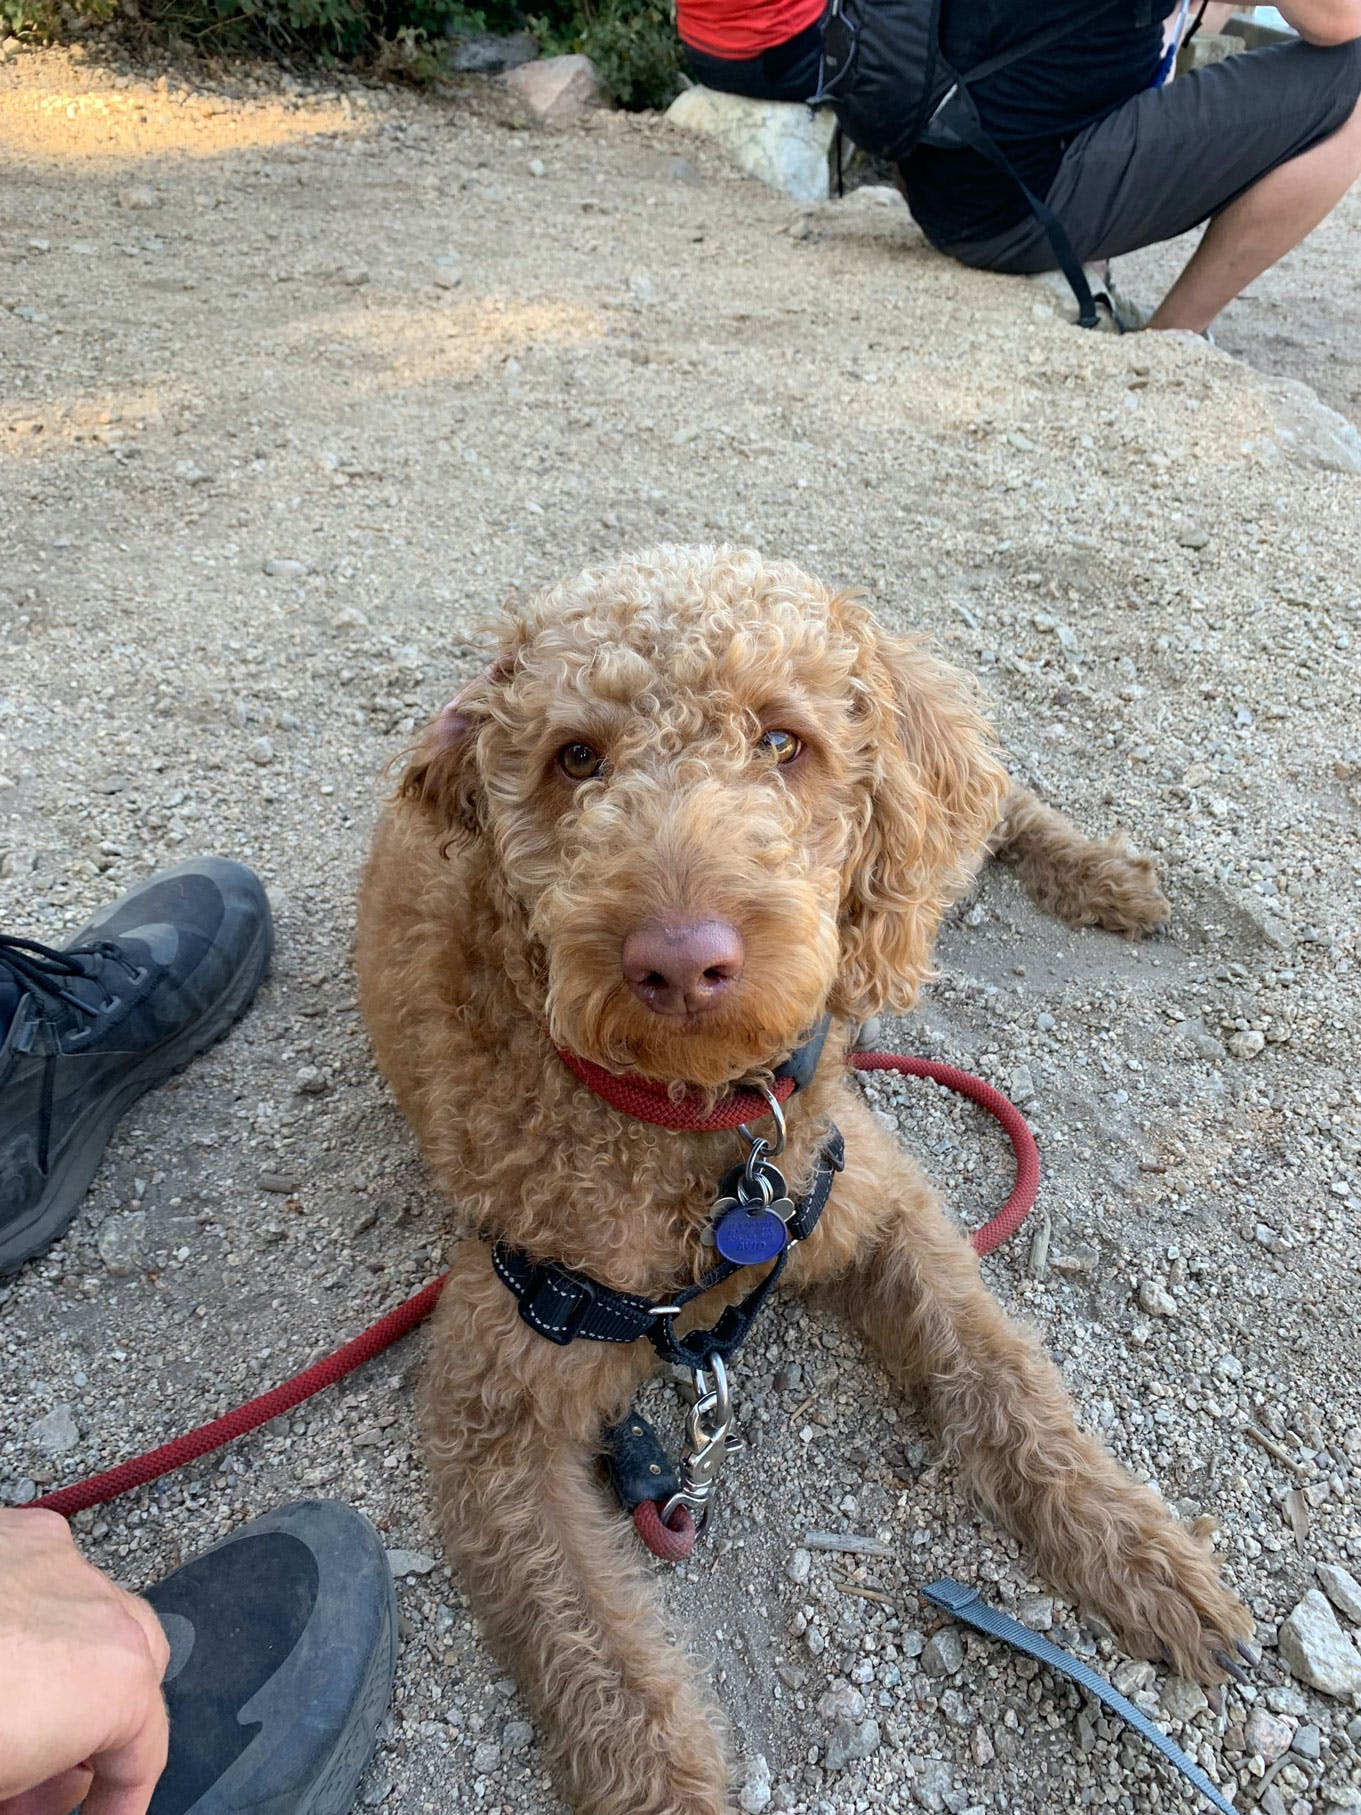 very cute goldendoodle with red leash